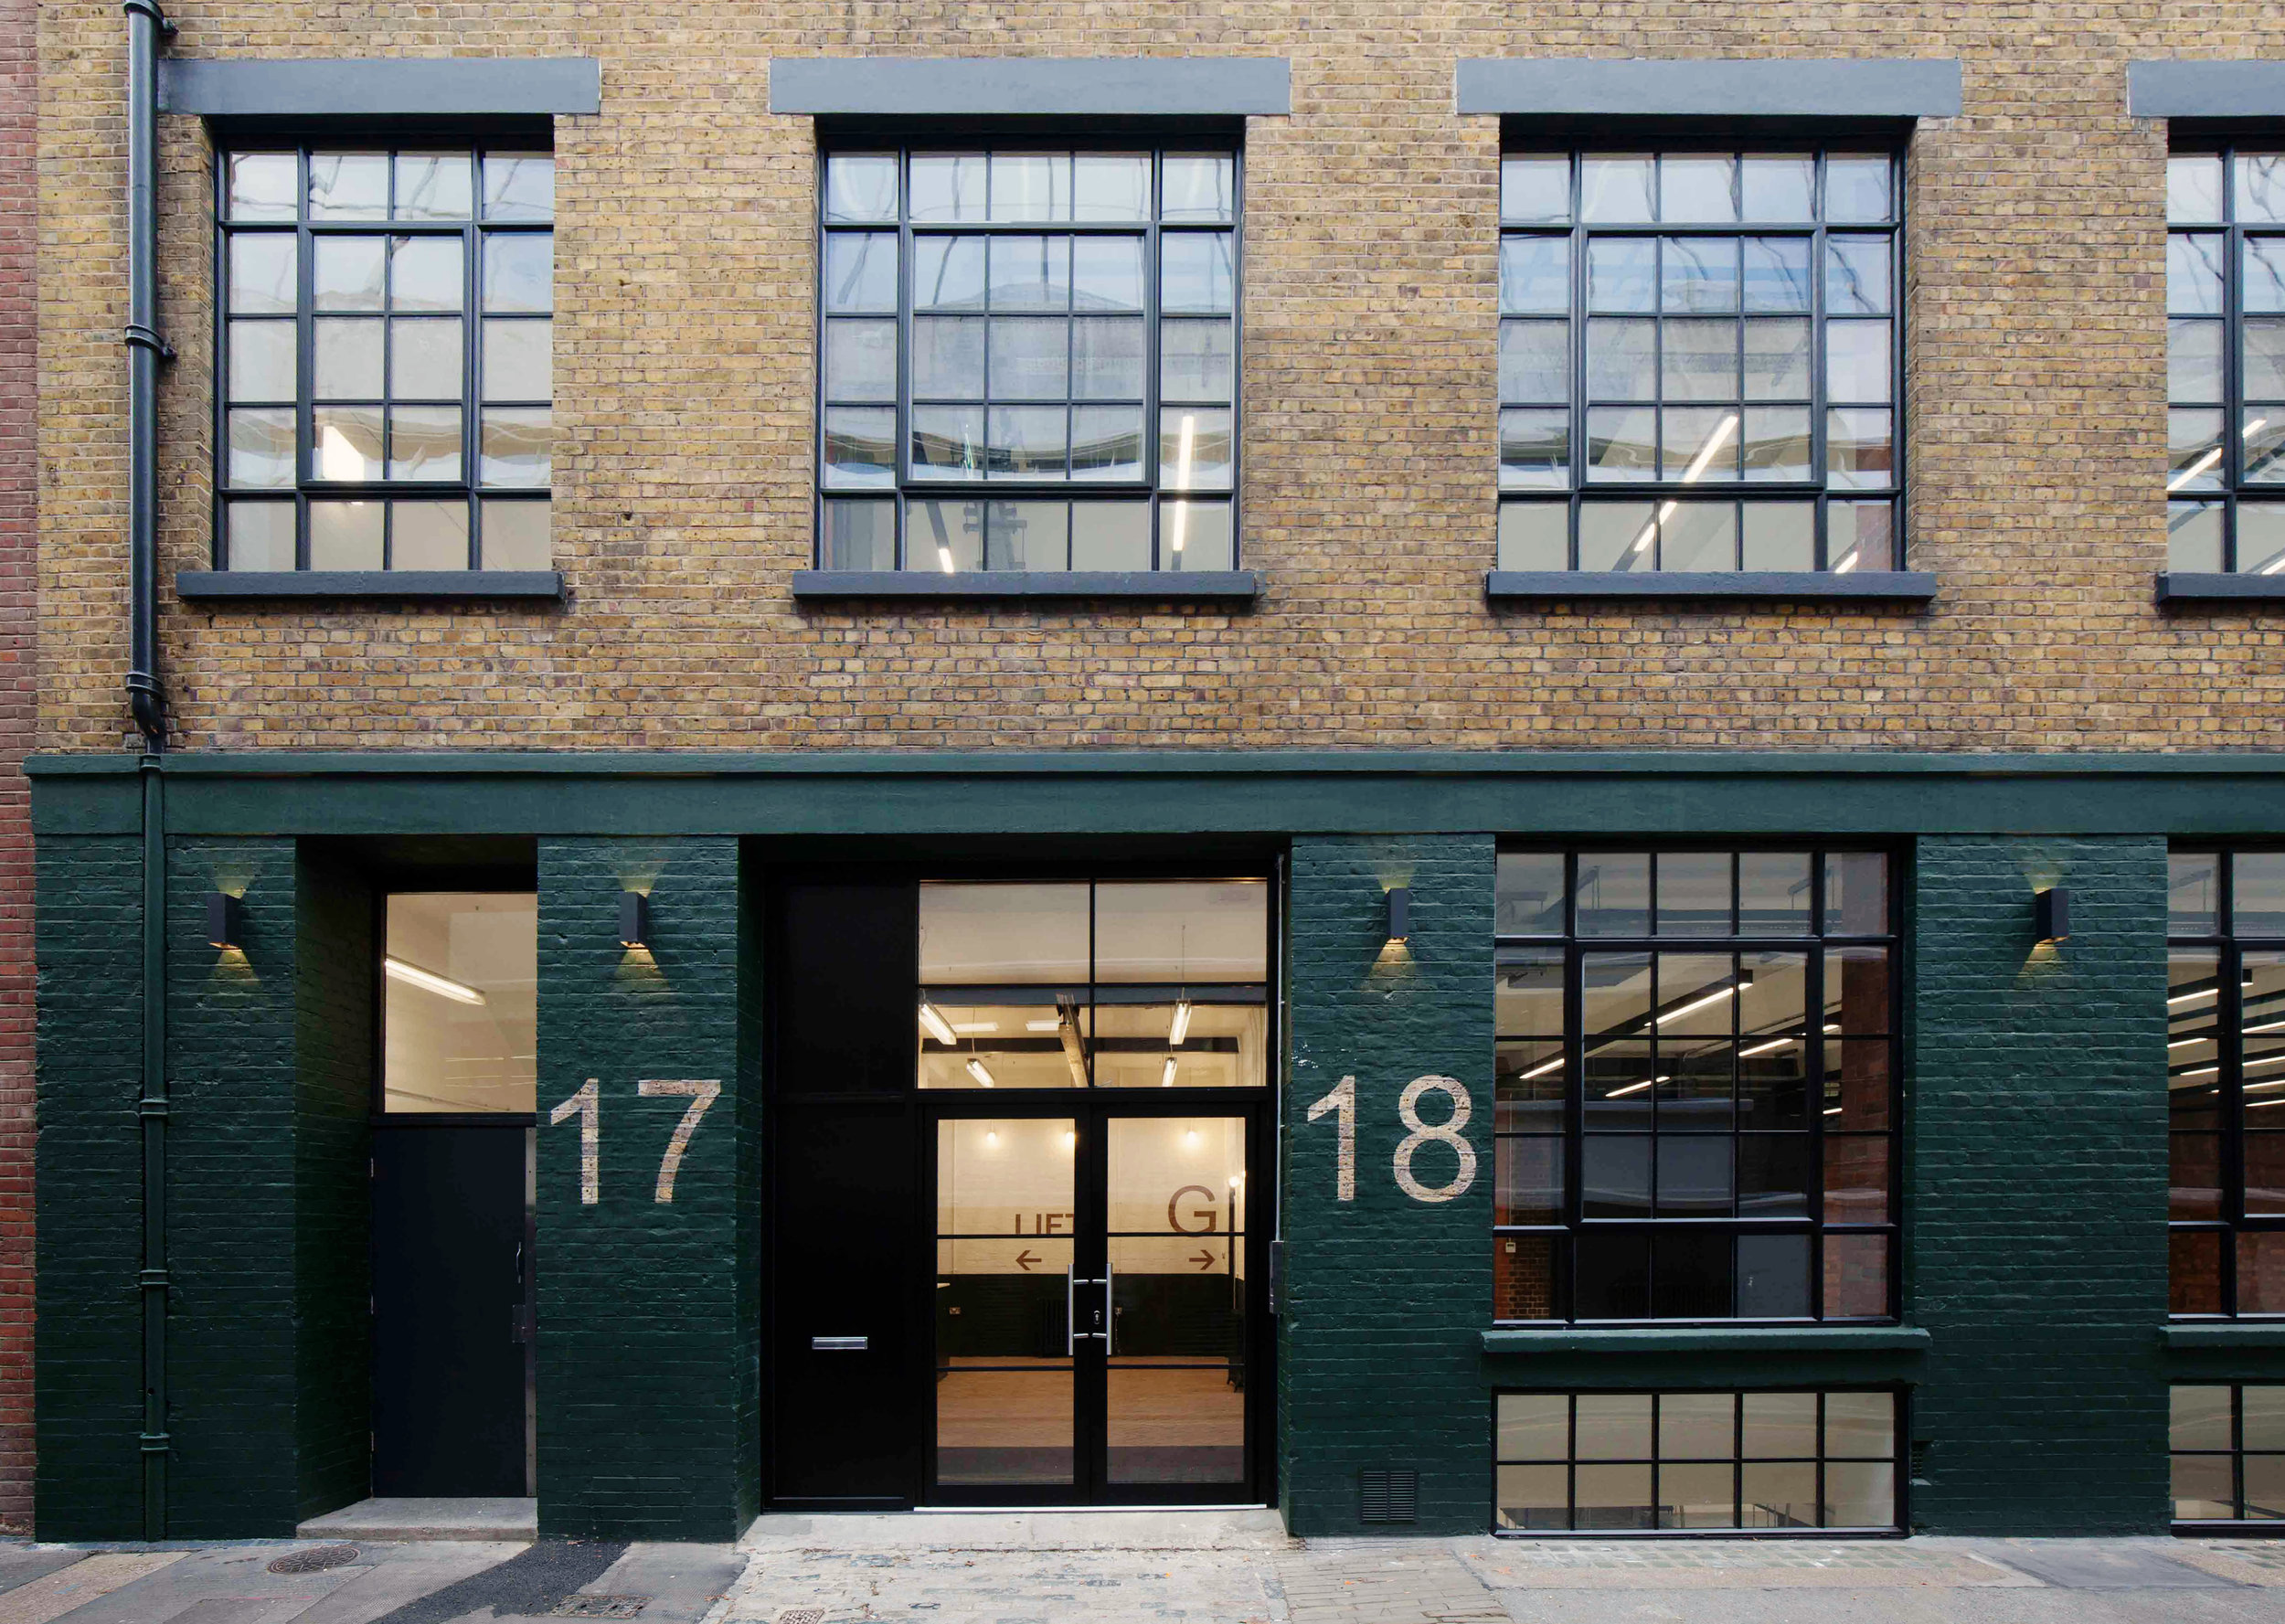 hayward's place, CLERKENWELL - Located just behind Clerkenwell Green, this warehouse office conversion was acquired in 2016 needing modernisation.Once planning was achieved for an additional storey, Atlas appointed the design team and contractor, and managed the project to completion in late 2018.The refurbishment has been shortlisted for a number of industry awards, and was fully occupied within 3 months of the works ending.